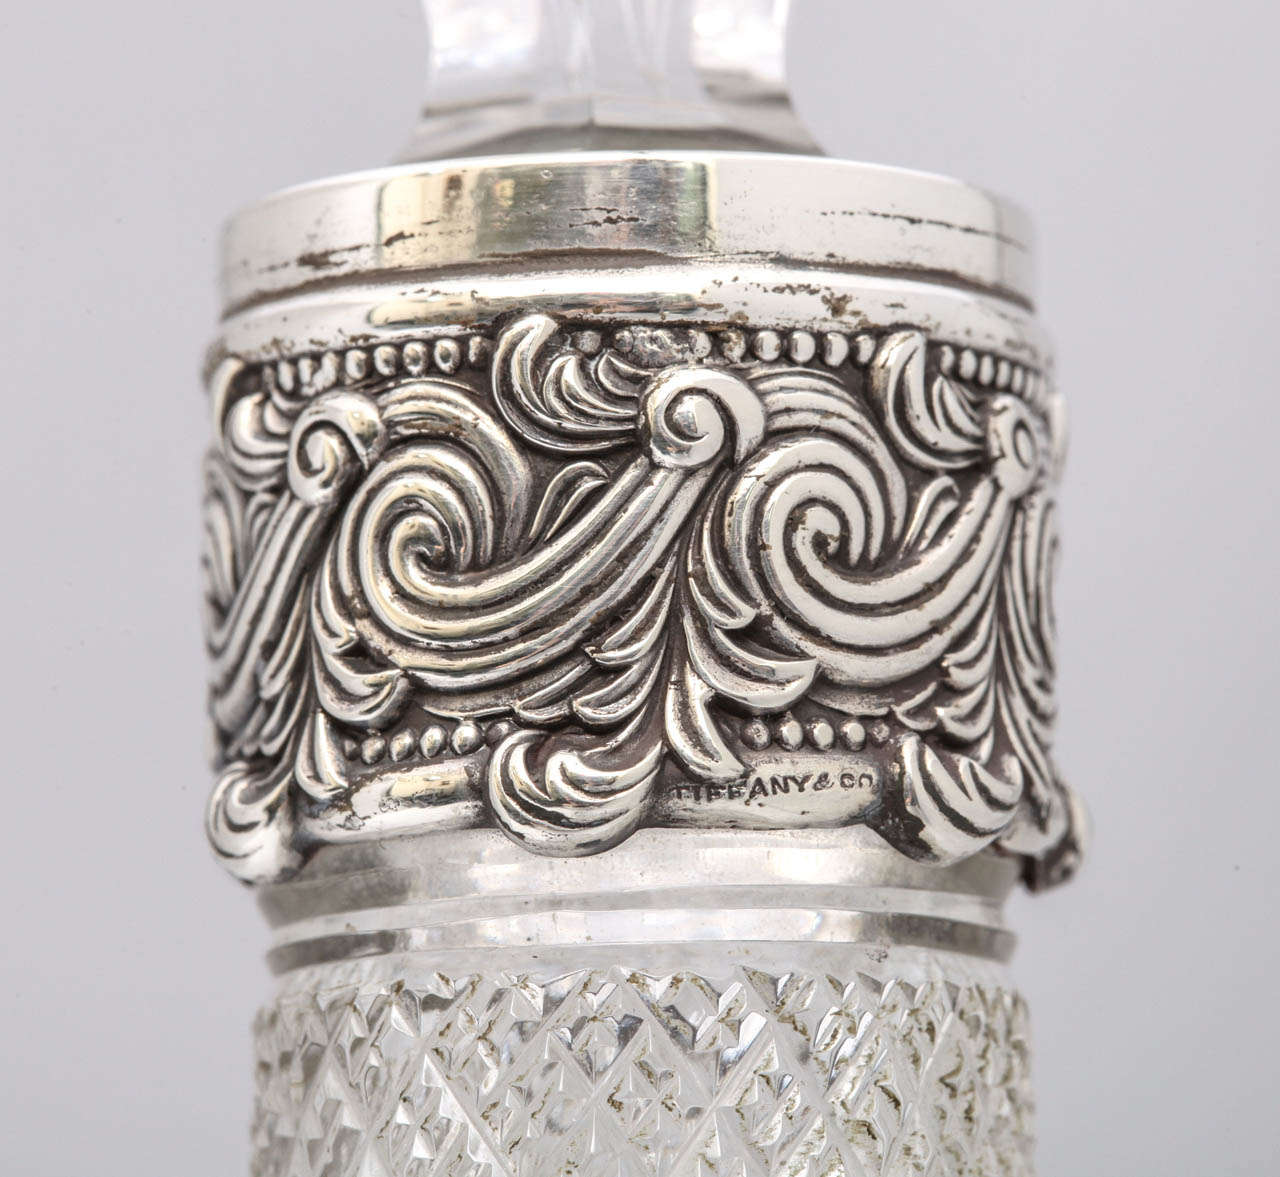 Very Rare Tall Sterling Silver-Mounted Tiffany & Co. Decanter For Sale 1